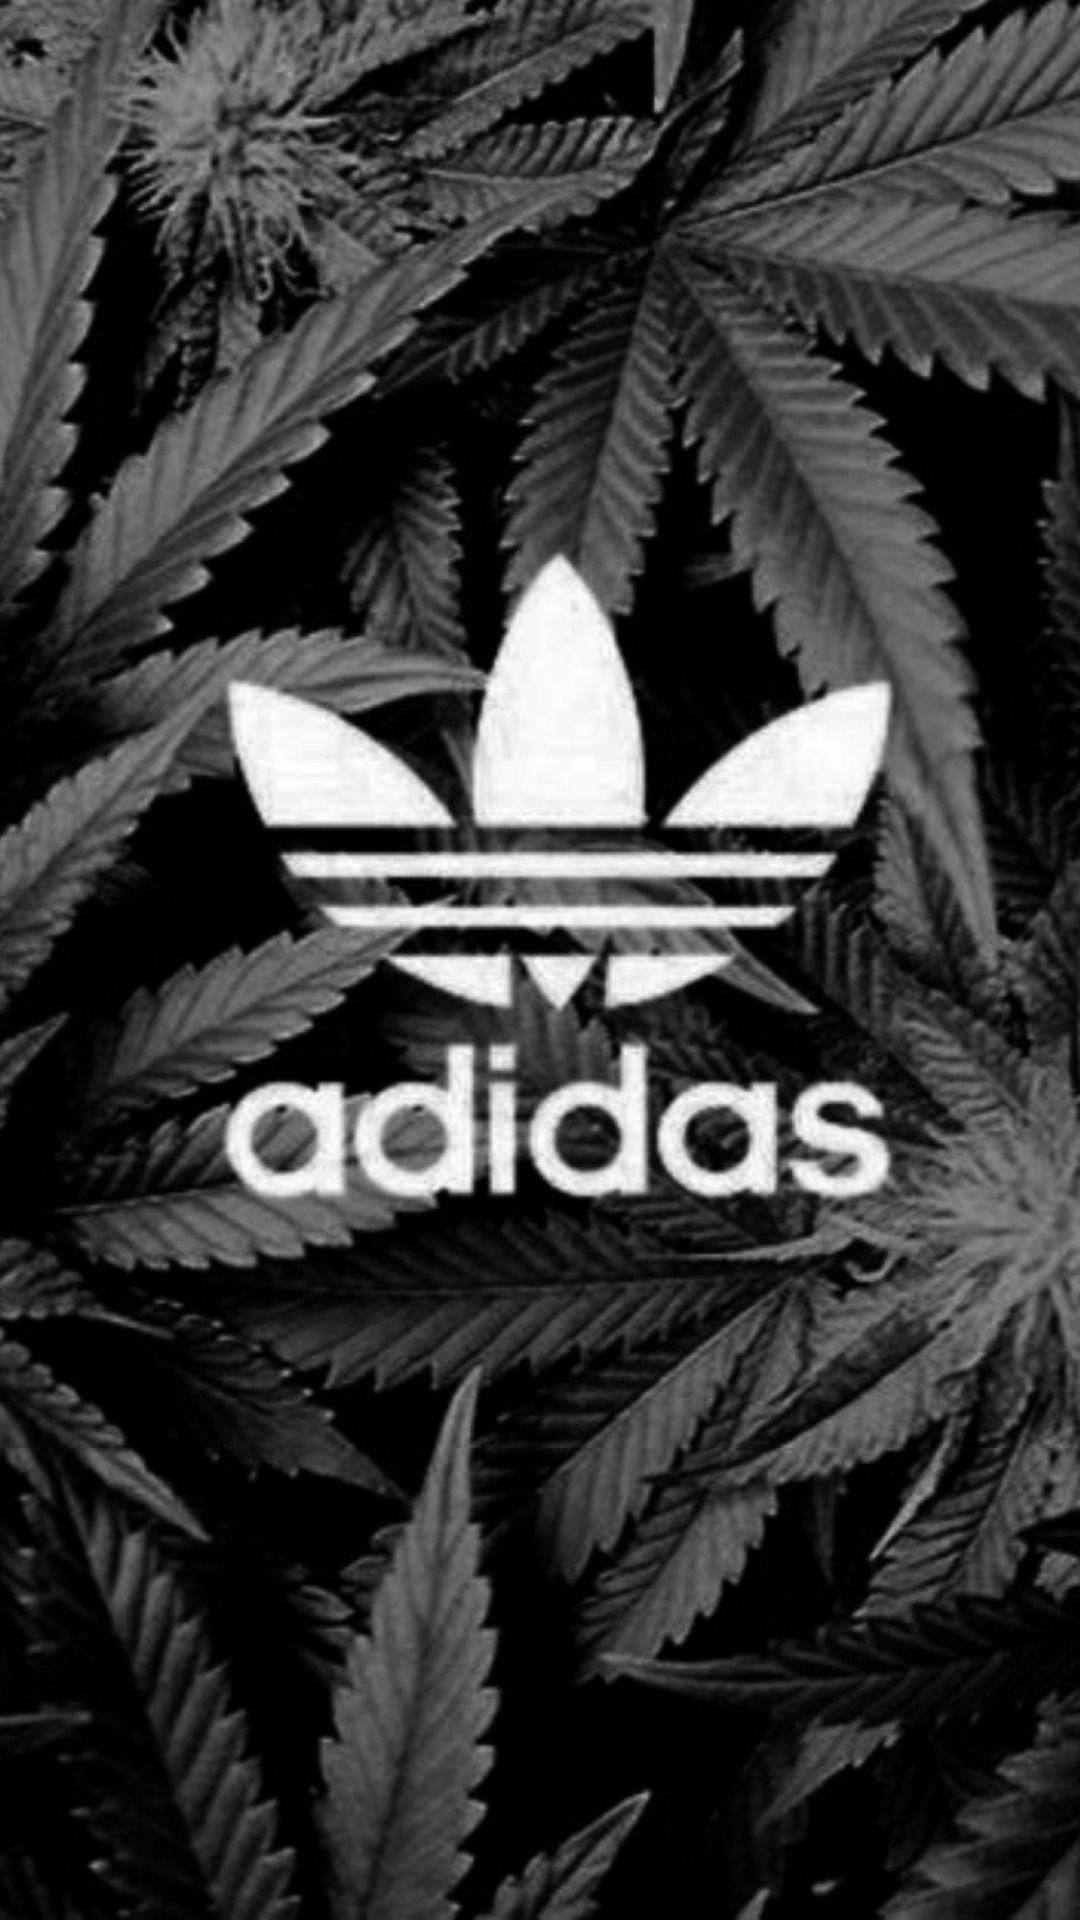 Tumblr iphone 6 wallpaper black and white - Iphone Wallpapers Iphone 6 Adidas Wallpaper 2